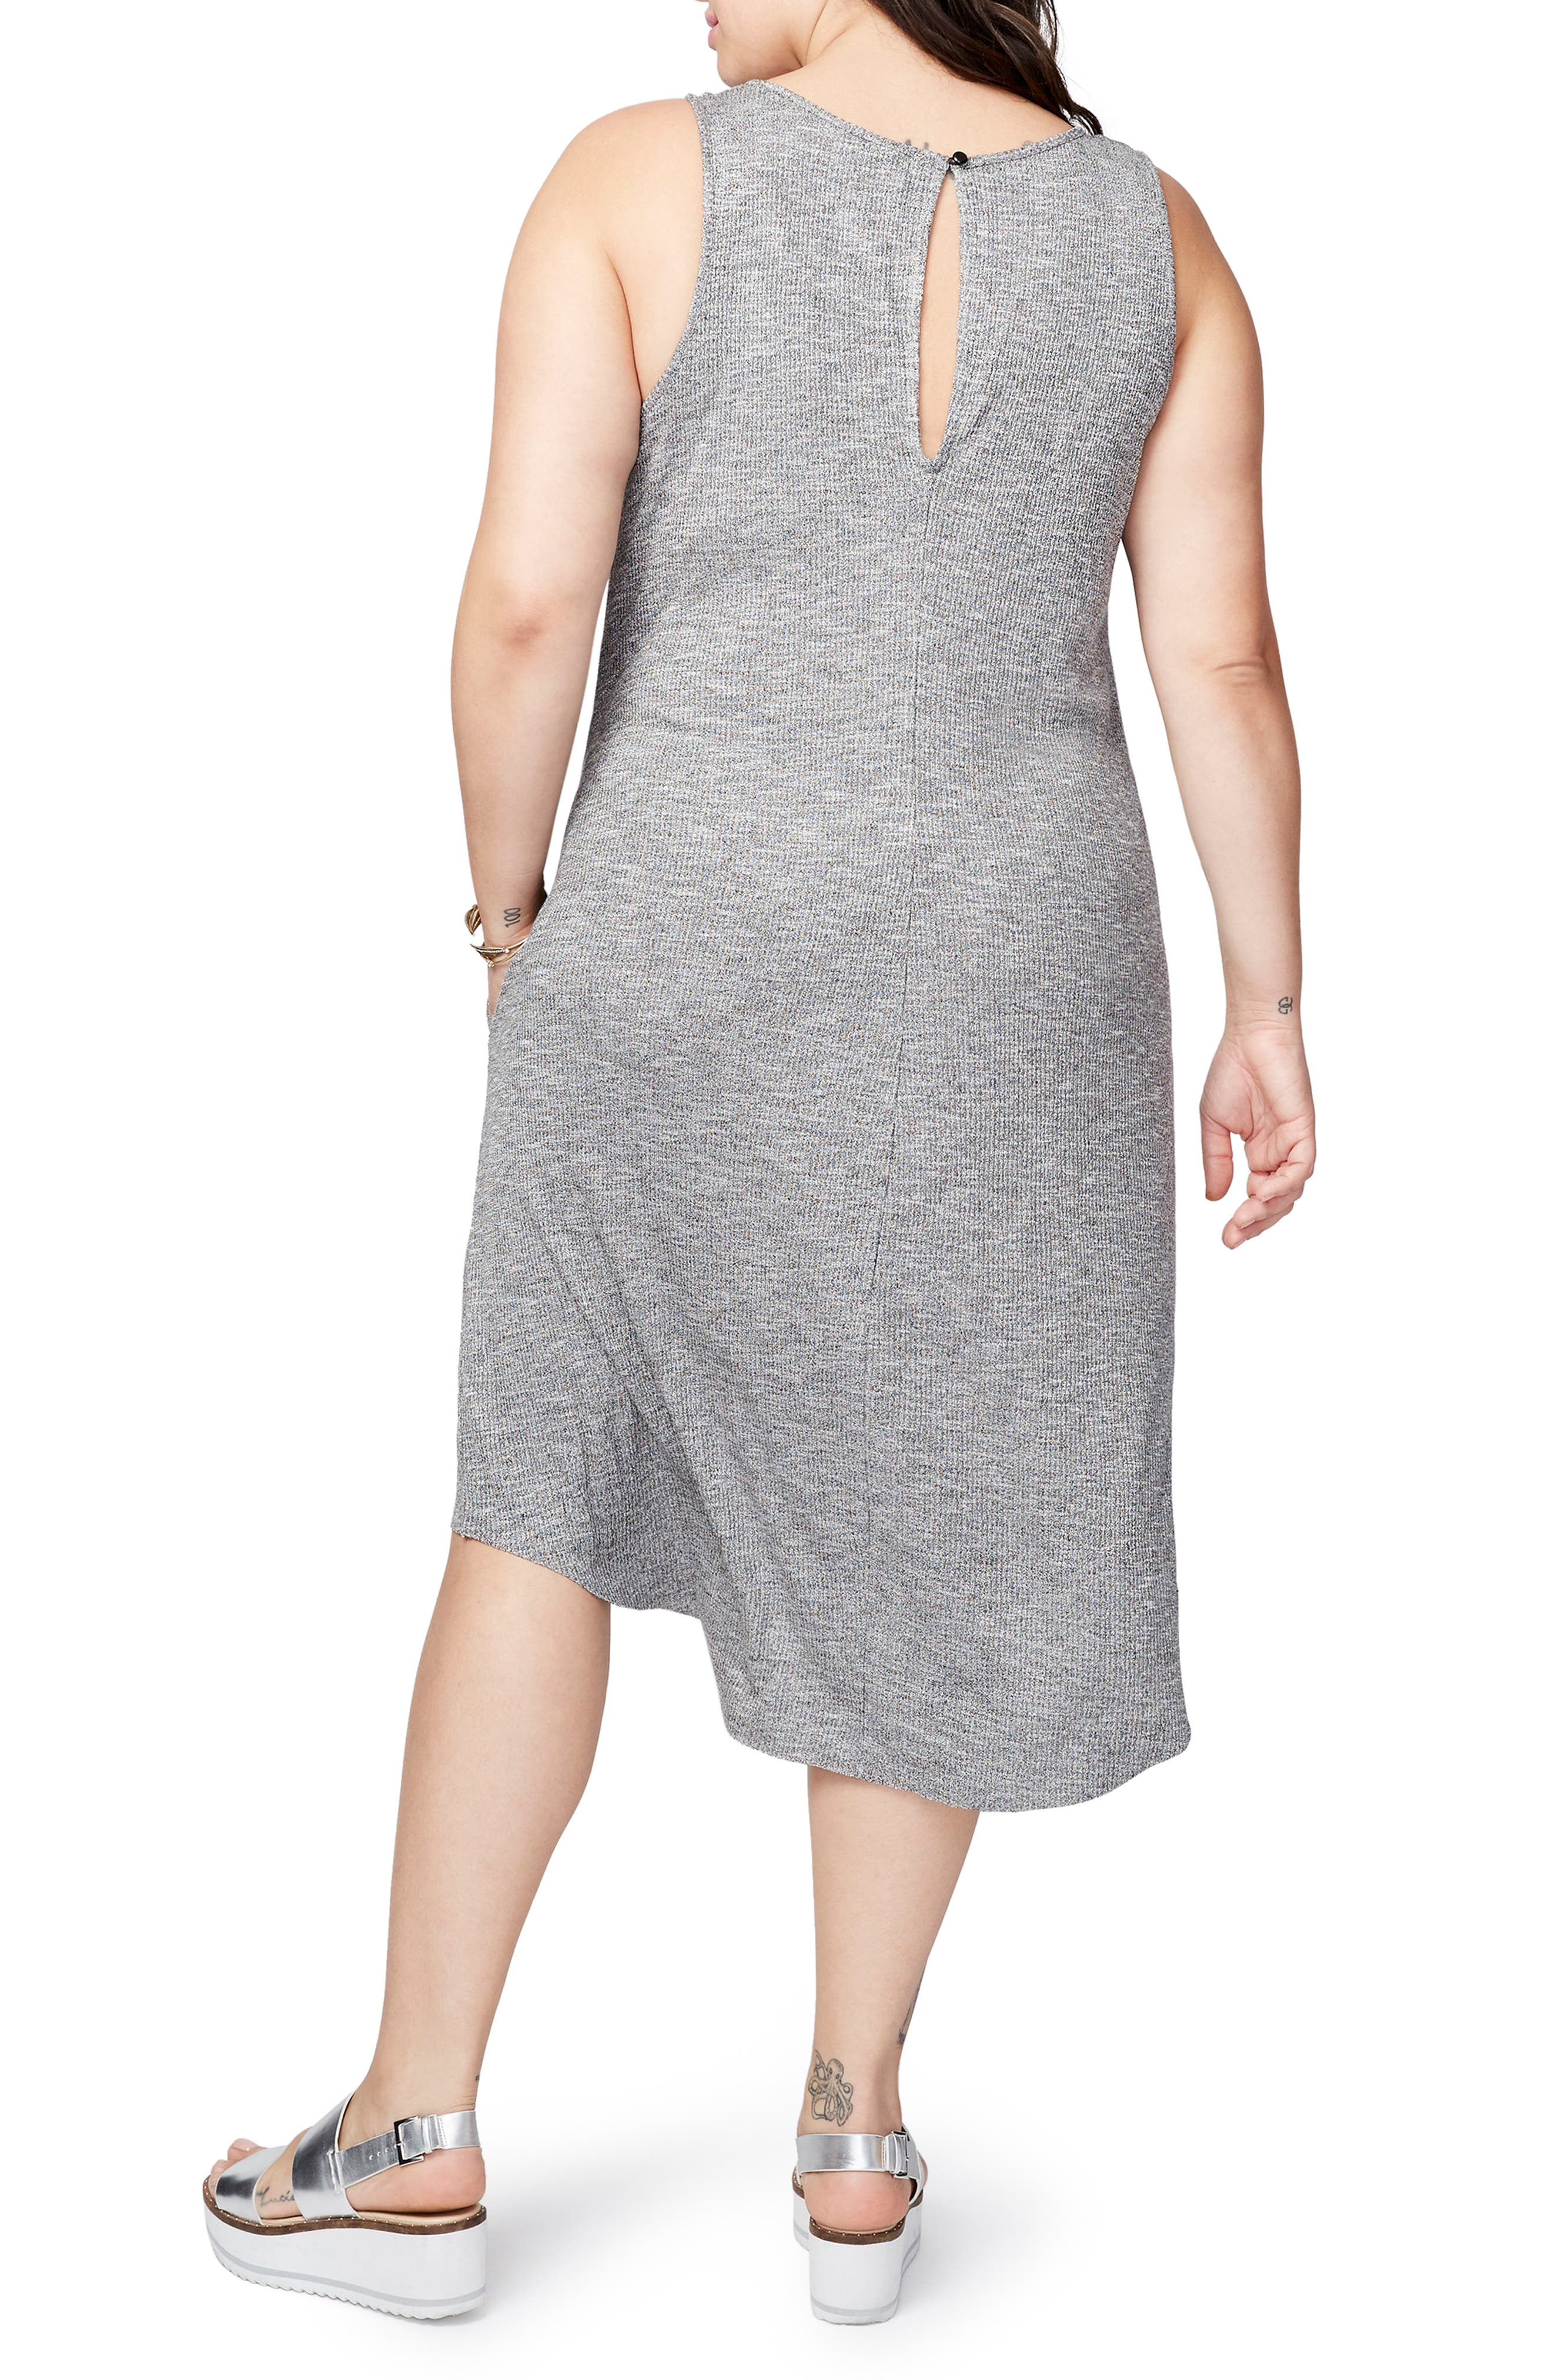 Alternate Image 2  - RACHEL Rachel Roy Rib Knit High/Low Dress (Plus Size)